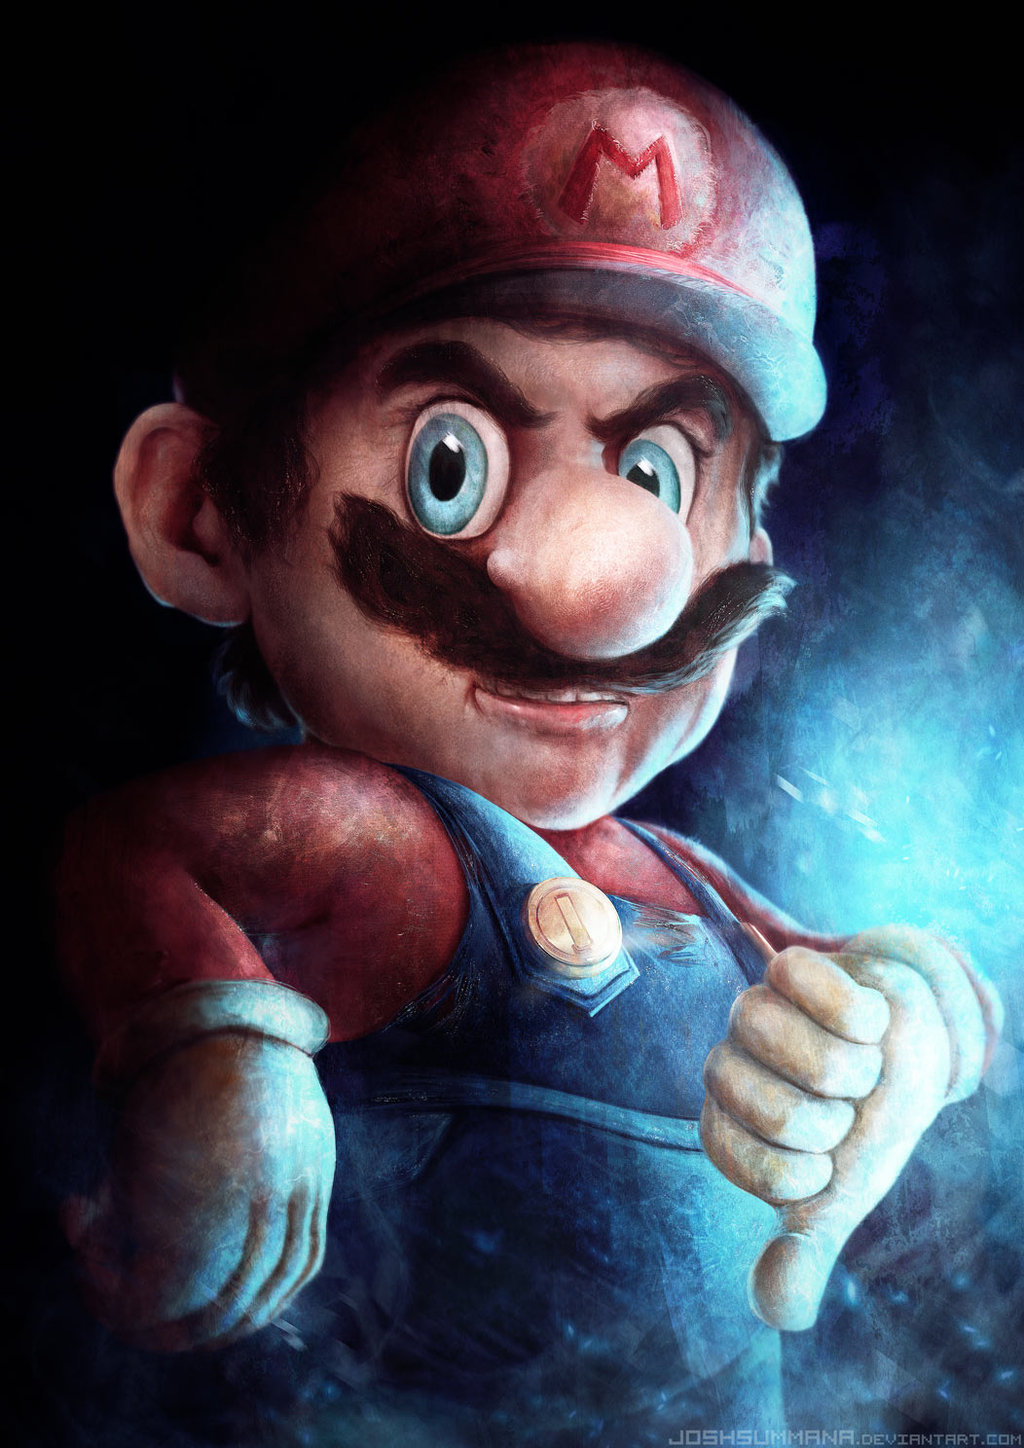 Mario and Sonic Face Their Evil Counterparts in Detailed Paintings